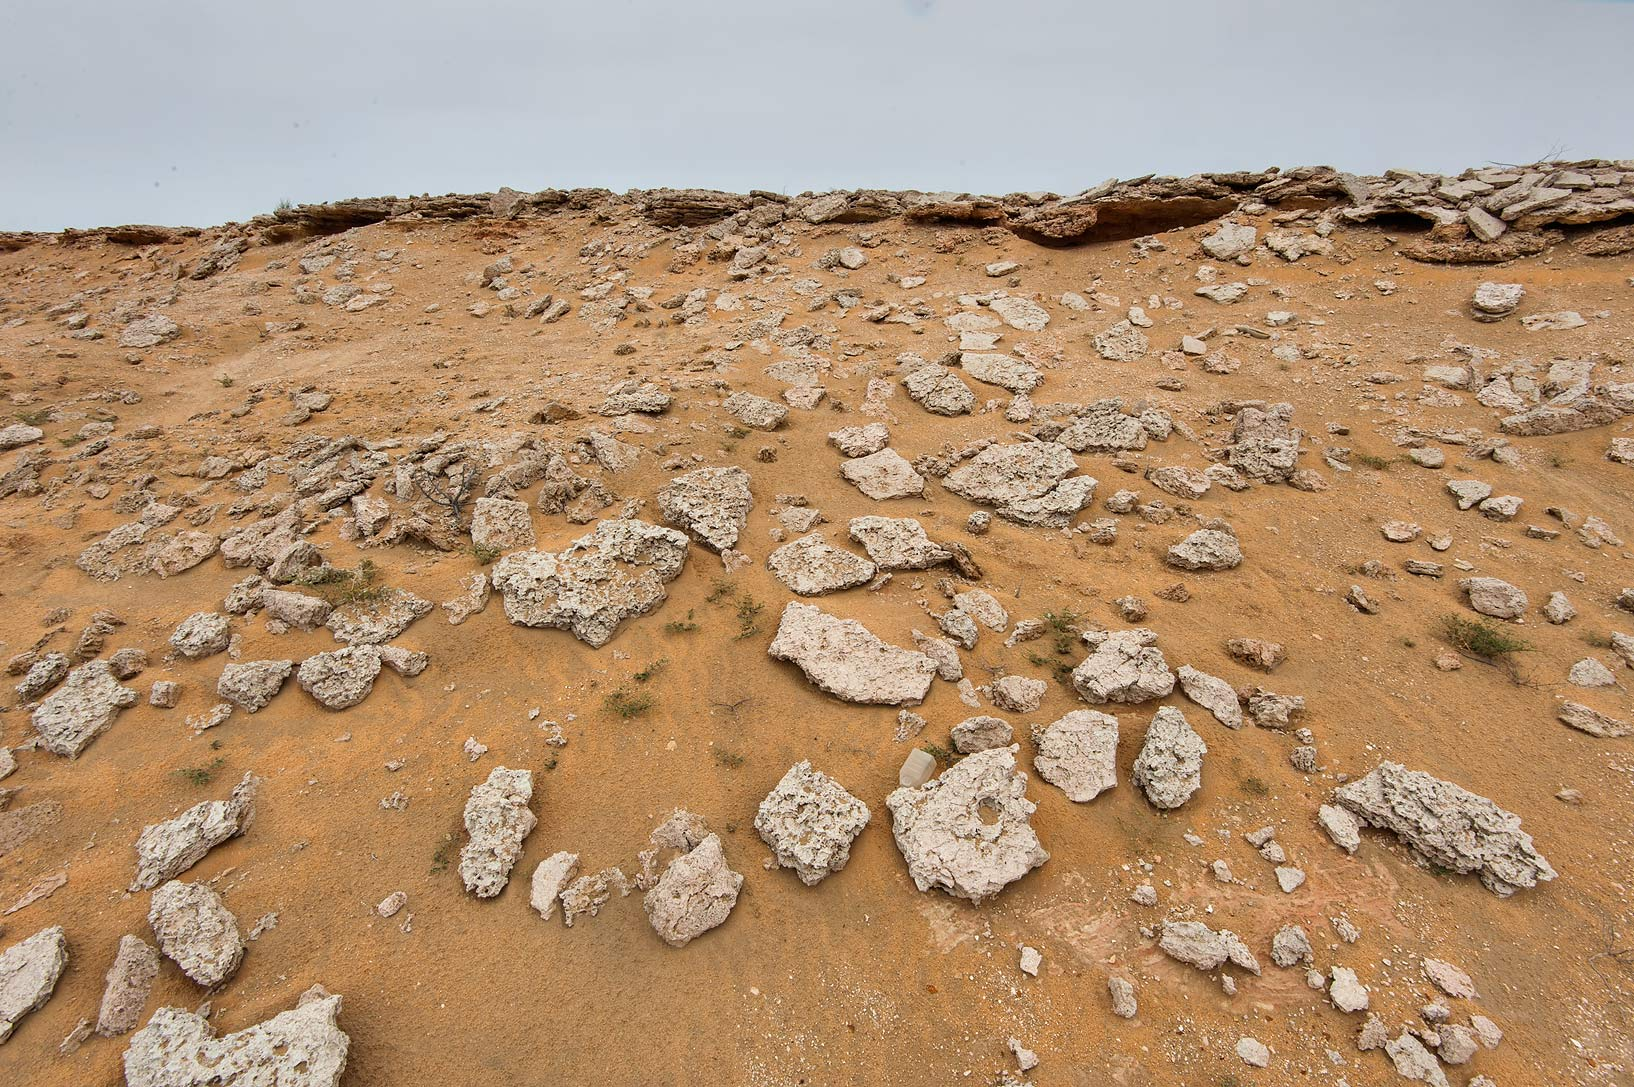 Erosion of an edge of a tabletop hill in...Reserve near Abu Samra. Southern Qatar